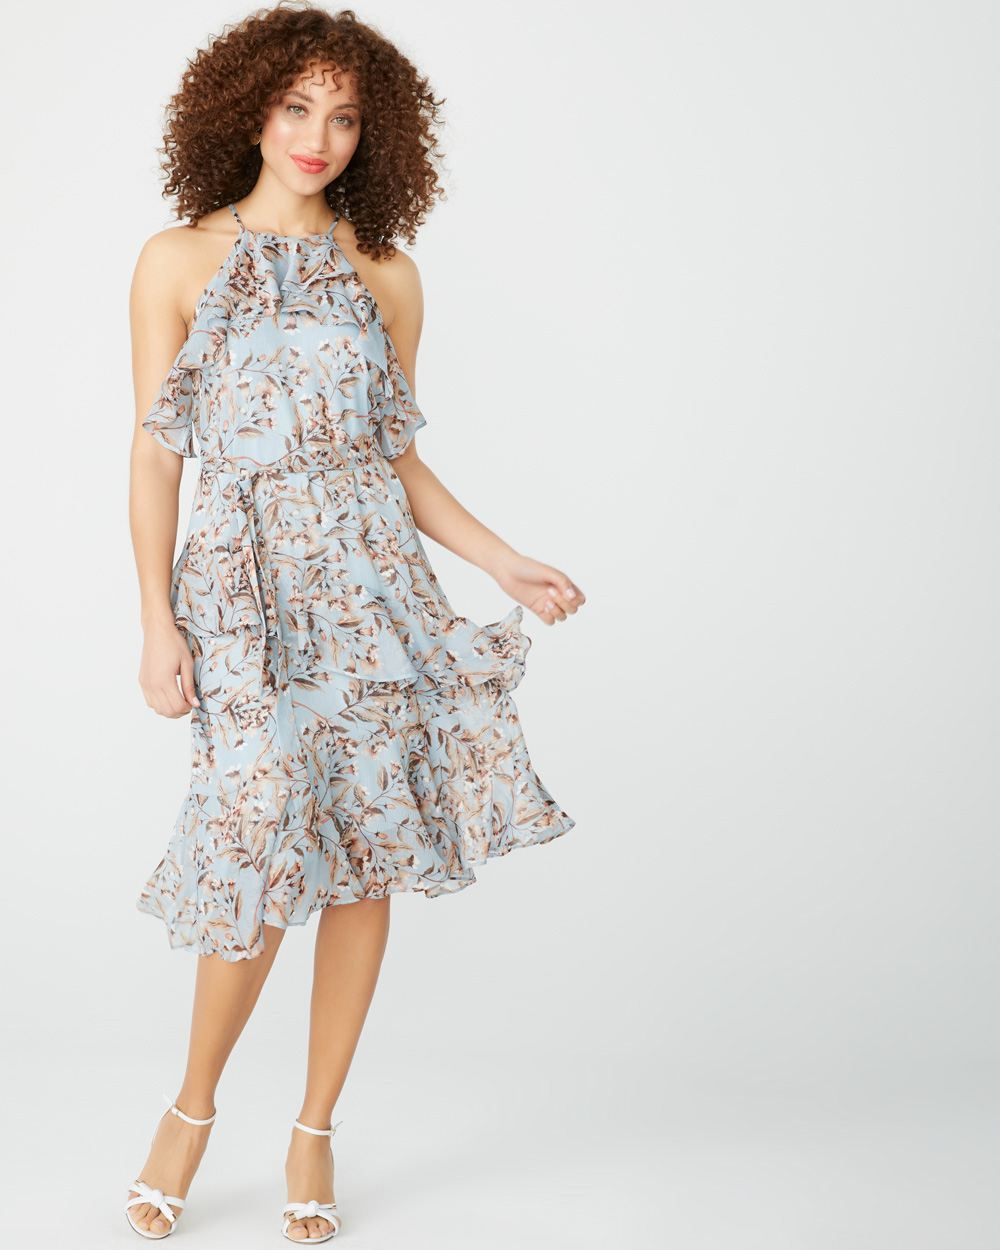 4367e69f91f12 Ruffled cocktail dress in floral lurex print | RW&CO.